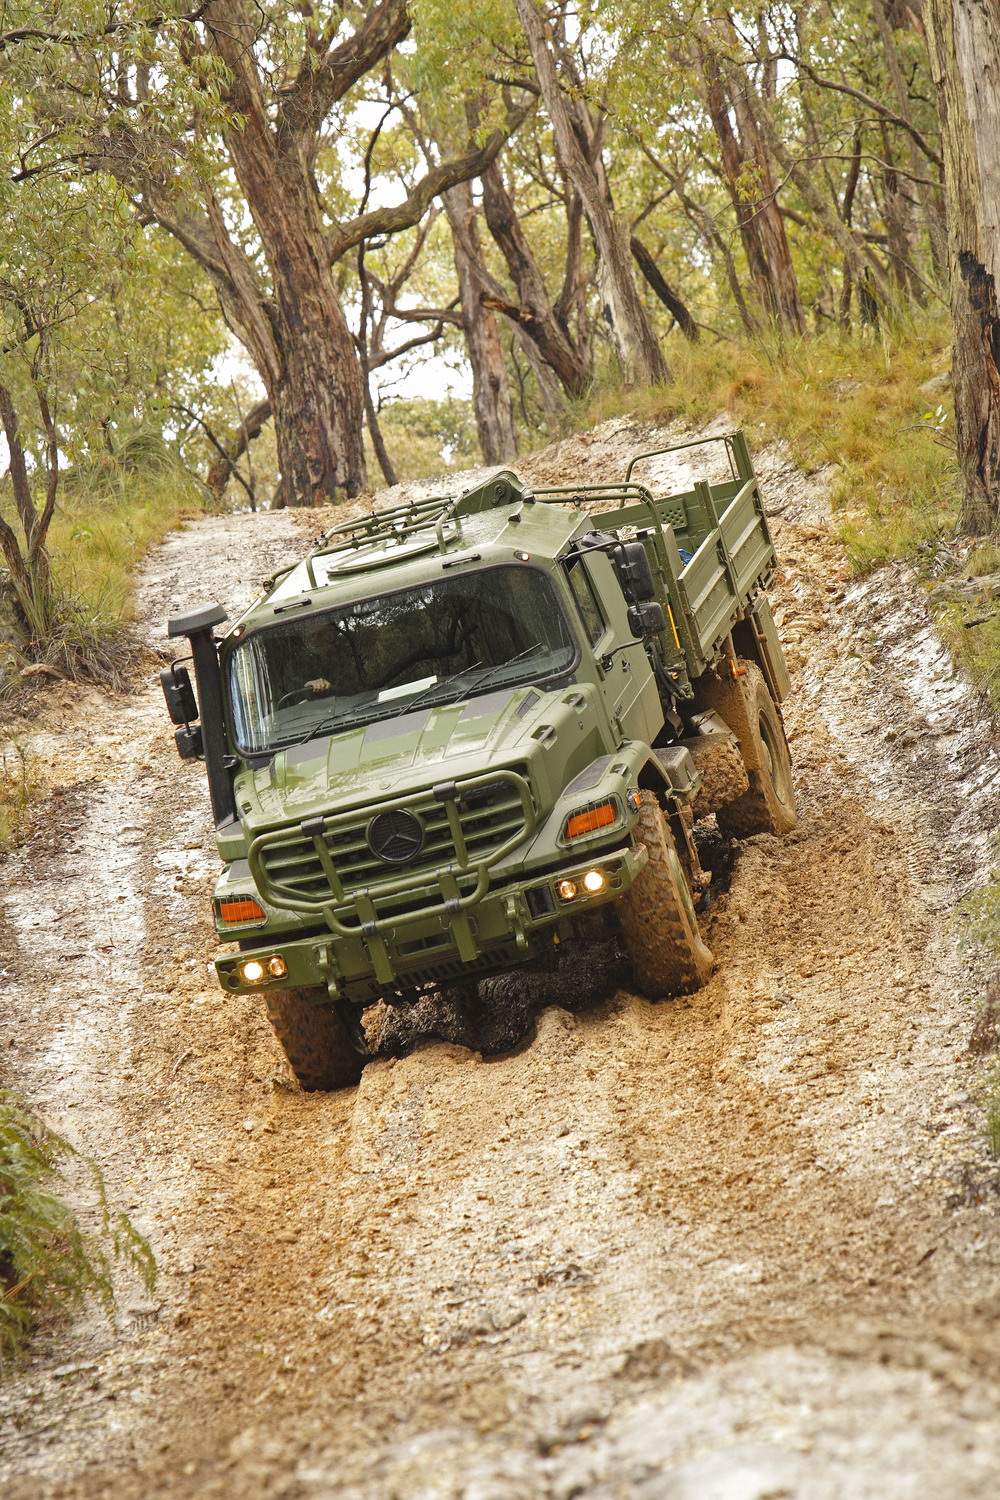 Mercedes-Benz's Actros vehicle in action. Under the Medium Support Vehicle System project the Canadian Army will acquire a new fleet of medium-weight trucks to replace its current fleet of logistics trucks, which have been in use since the 1980s. (Mercedes-Benz)